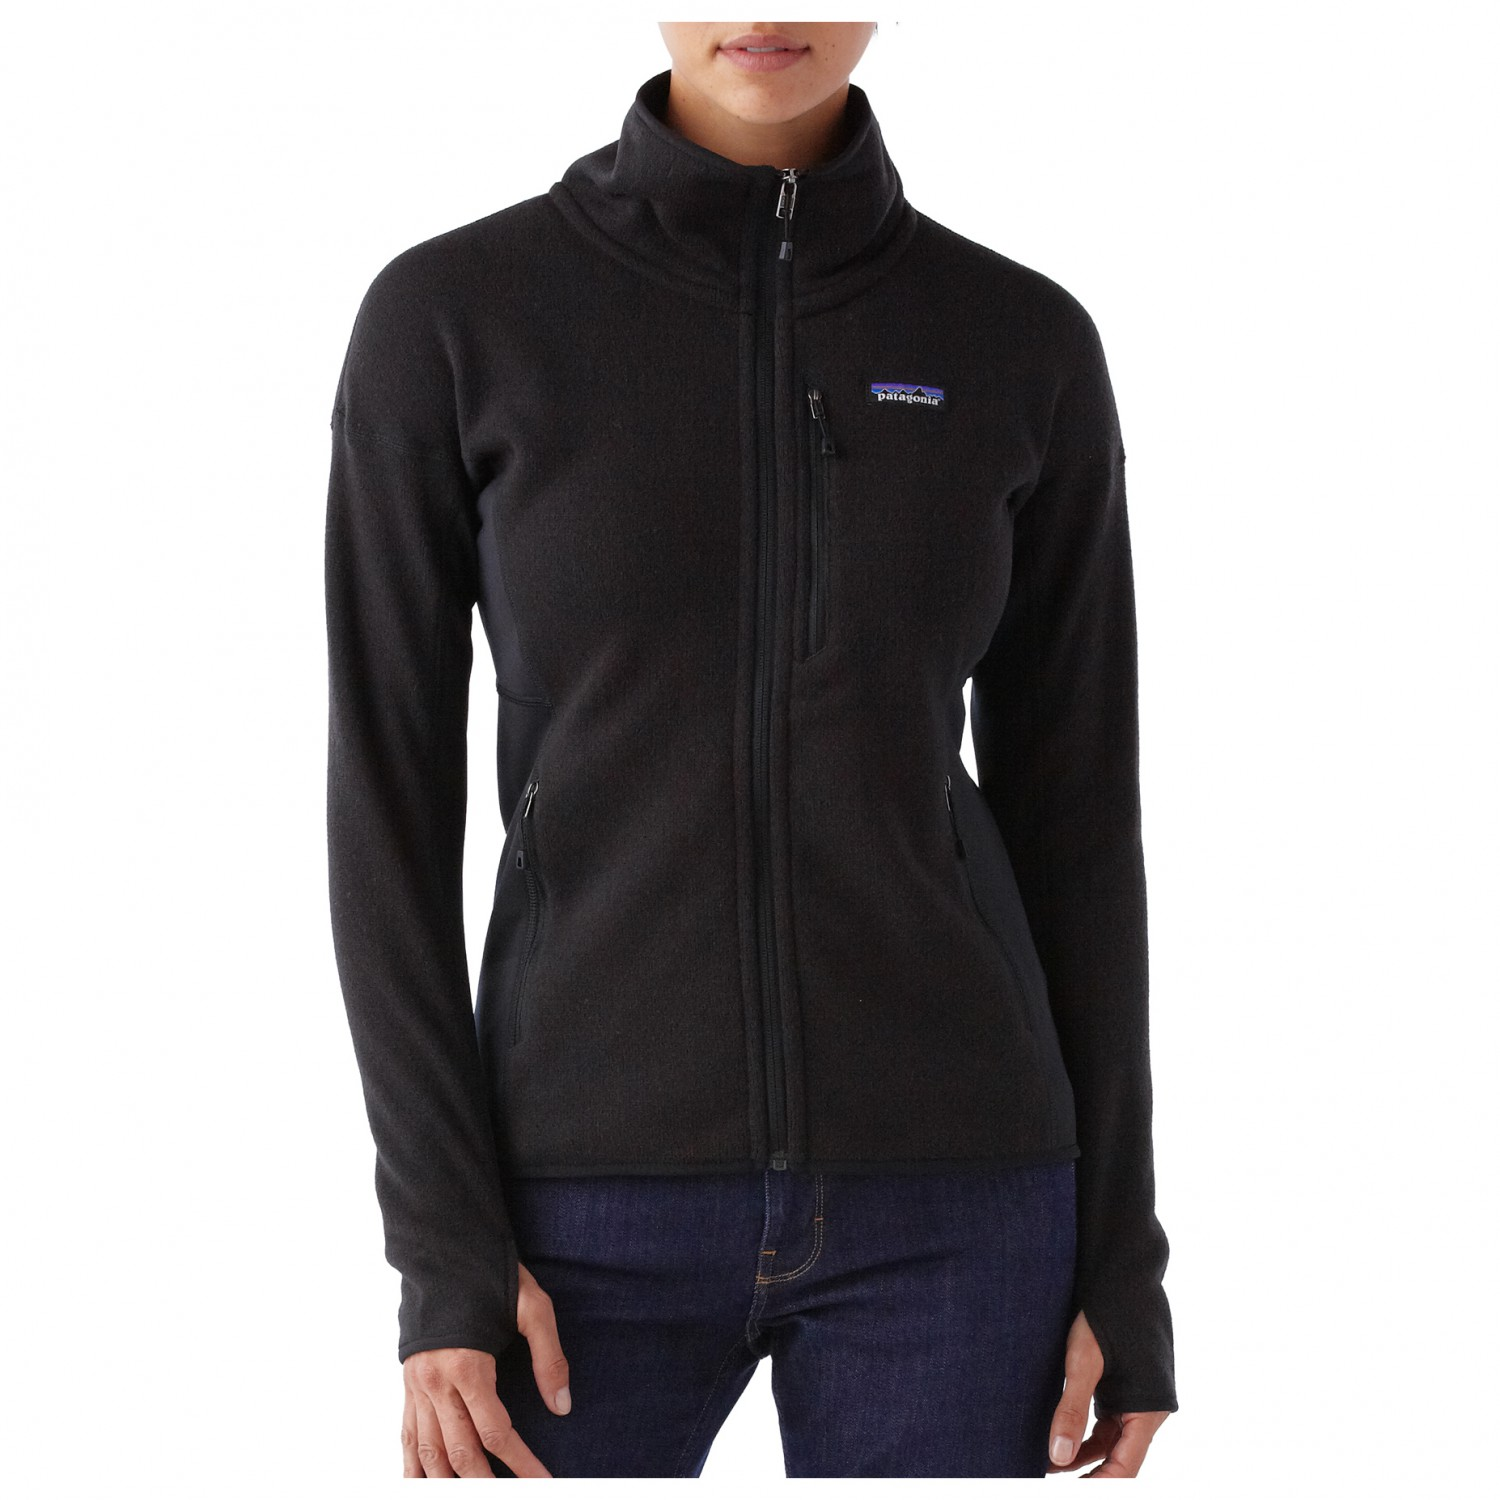 38fbc3251b5 ... Patagonia - Women s Performance Better Sweater Jacket - Veste polaire  ...